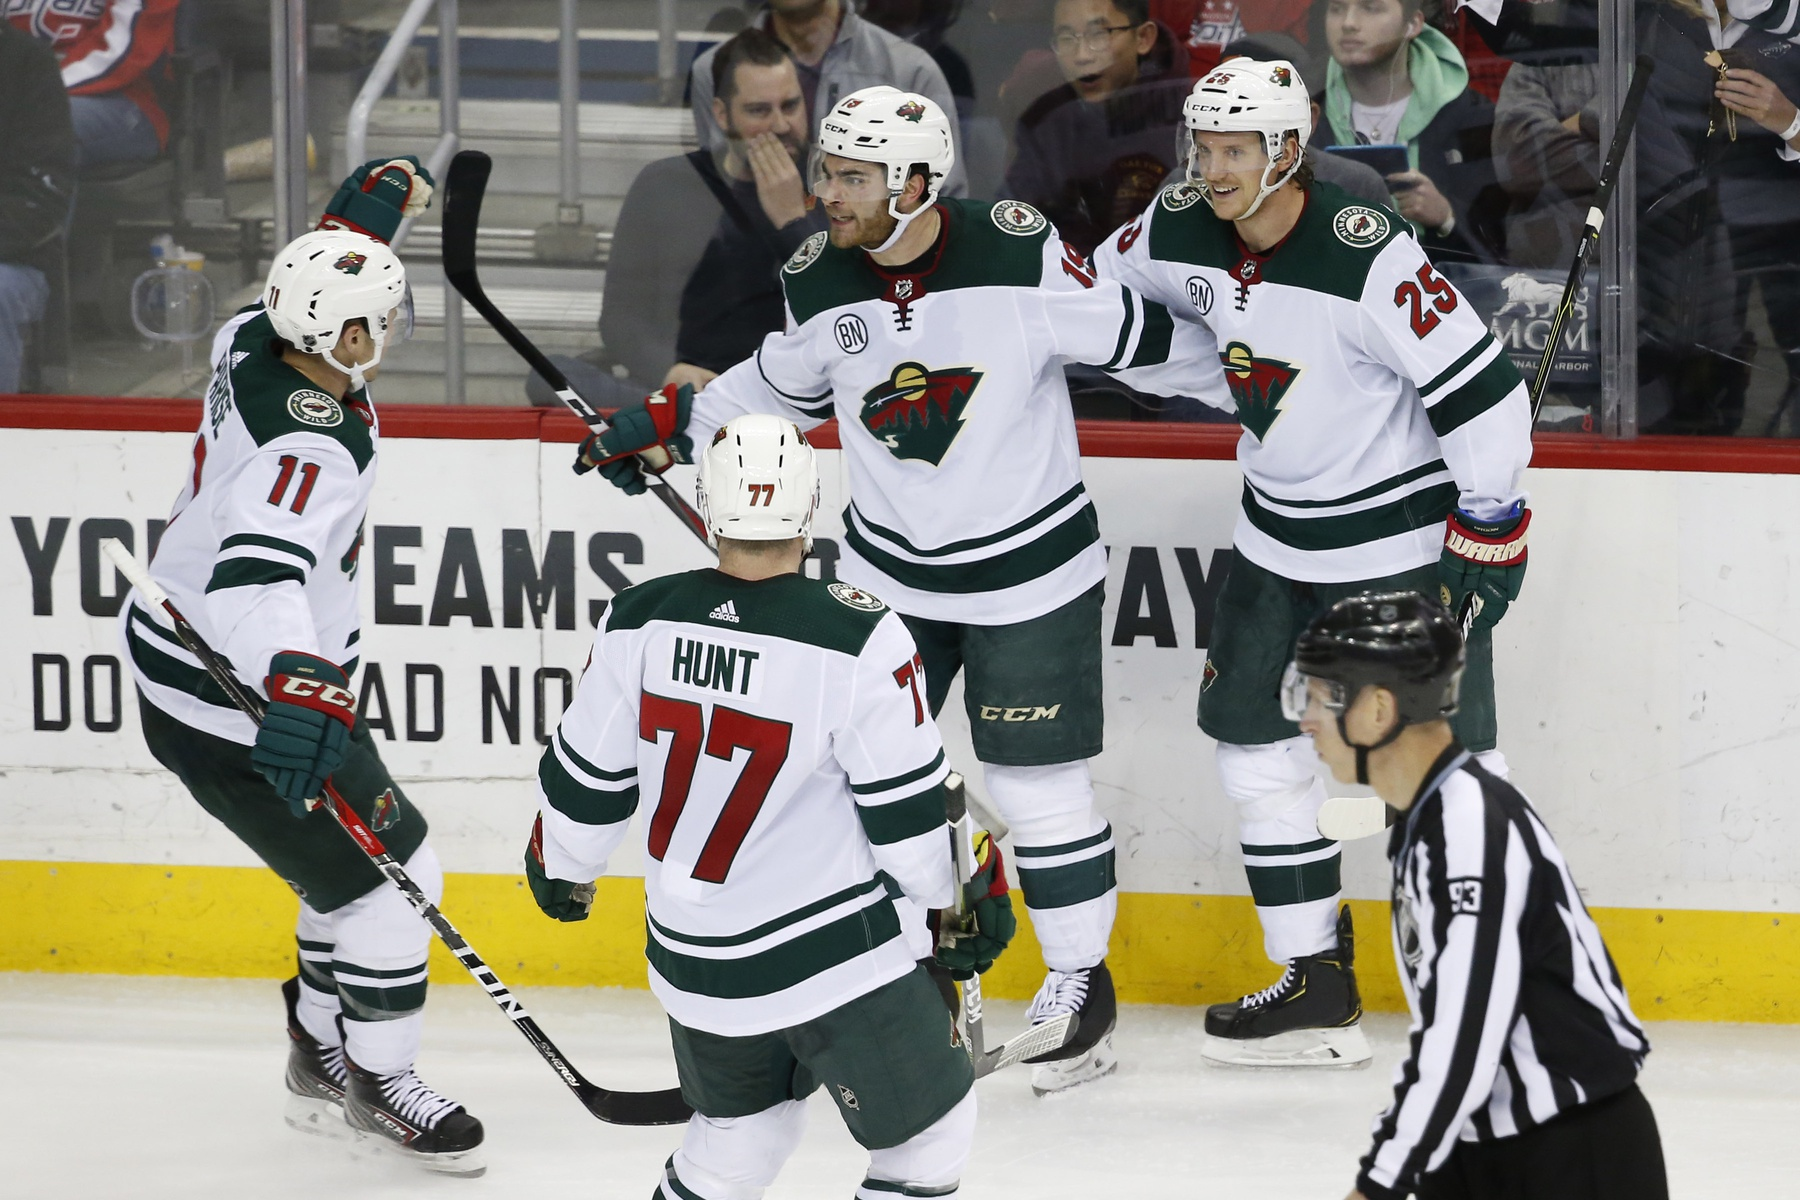 Wild win 2-1 over Capitals to stay in playoff hunt  278605602d32